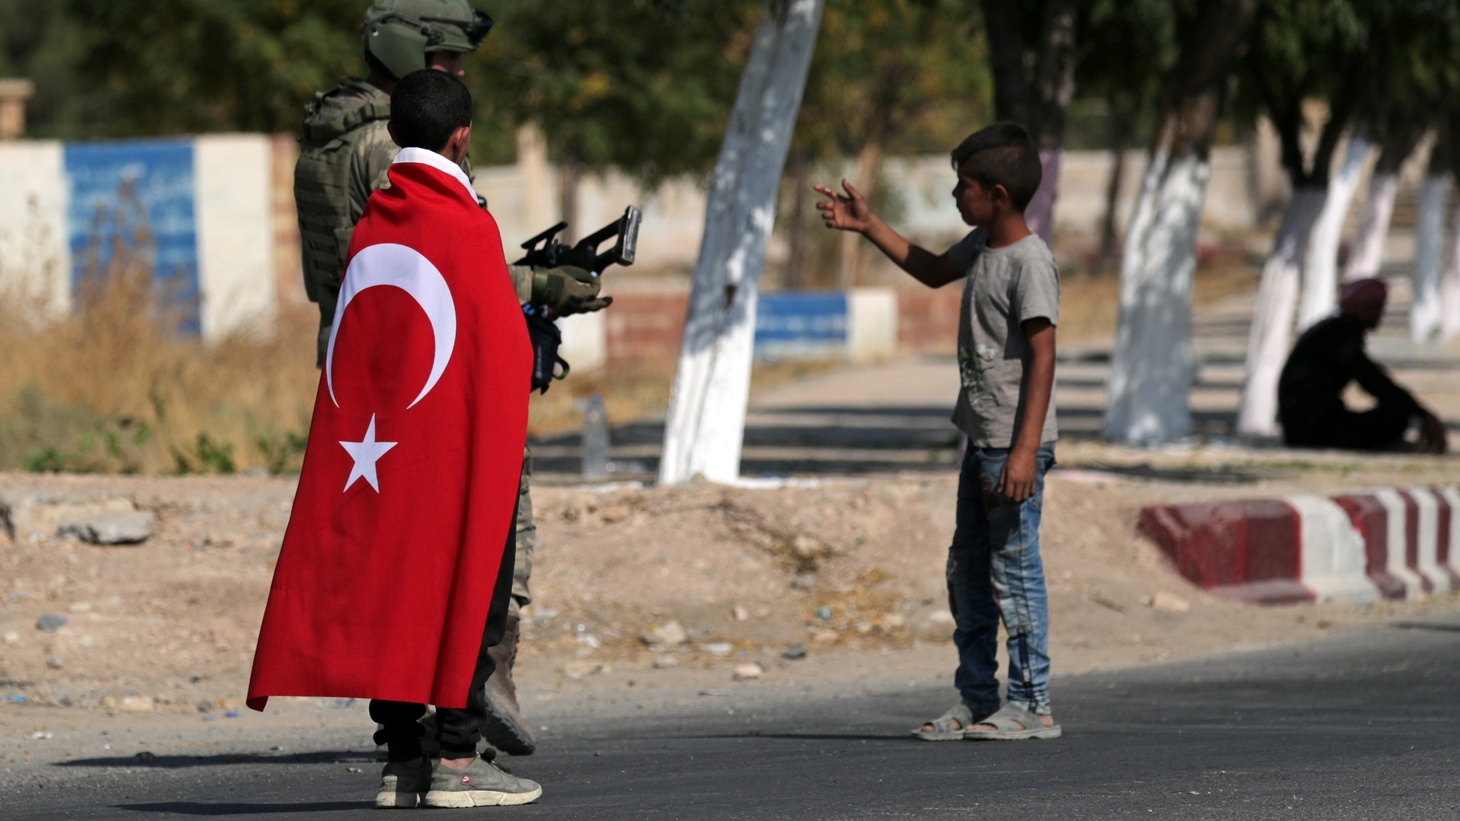 A boy wearing a Turkish flag stands next to a Turkish soldier as another boy gestures in the town of Tal Abyad, Syria October 23, 2019.